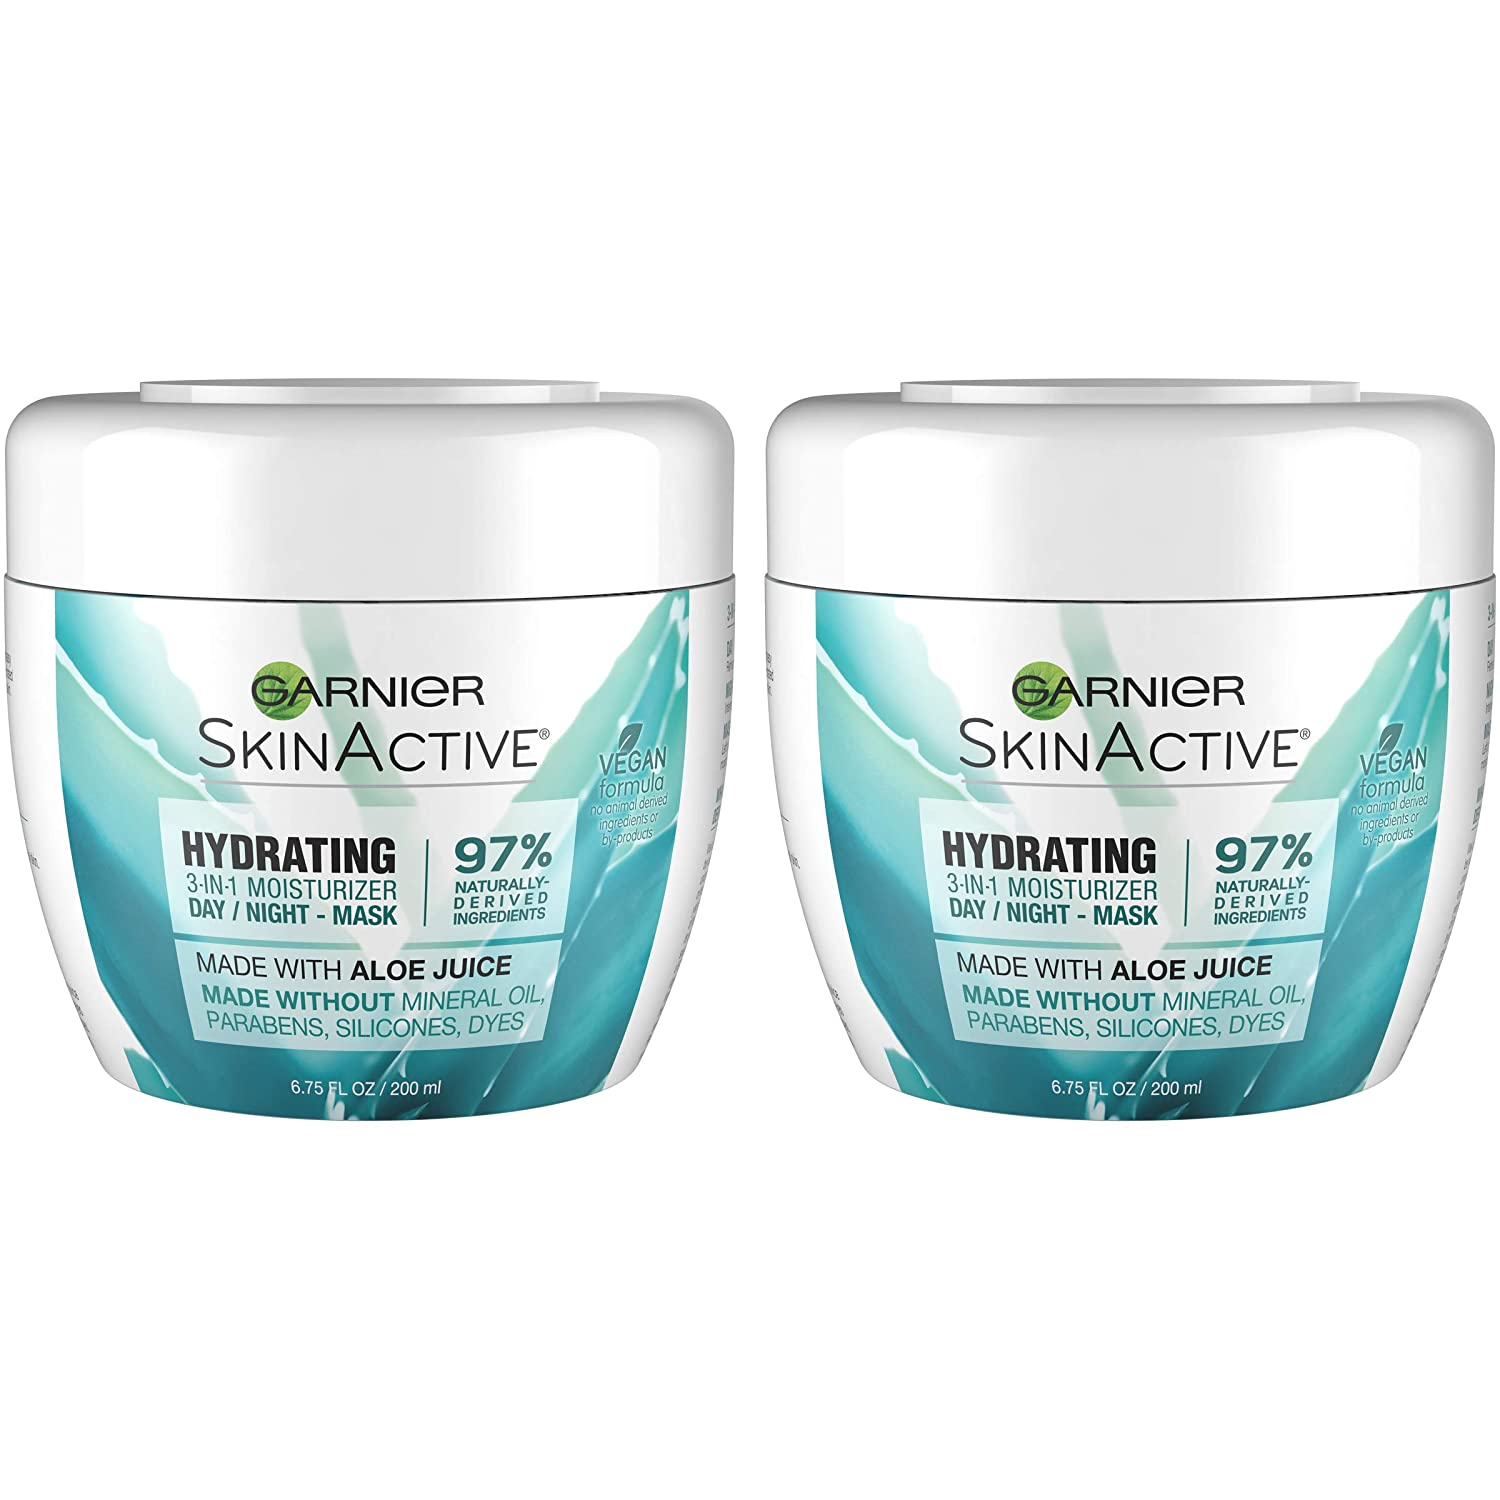 Garnier Skinactive Skinactive 3-In-1 Face Moisturizer with Aloe for Dry Skin, 2 Count